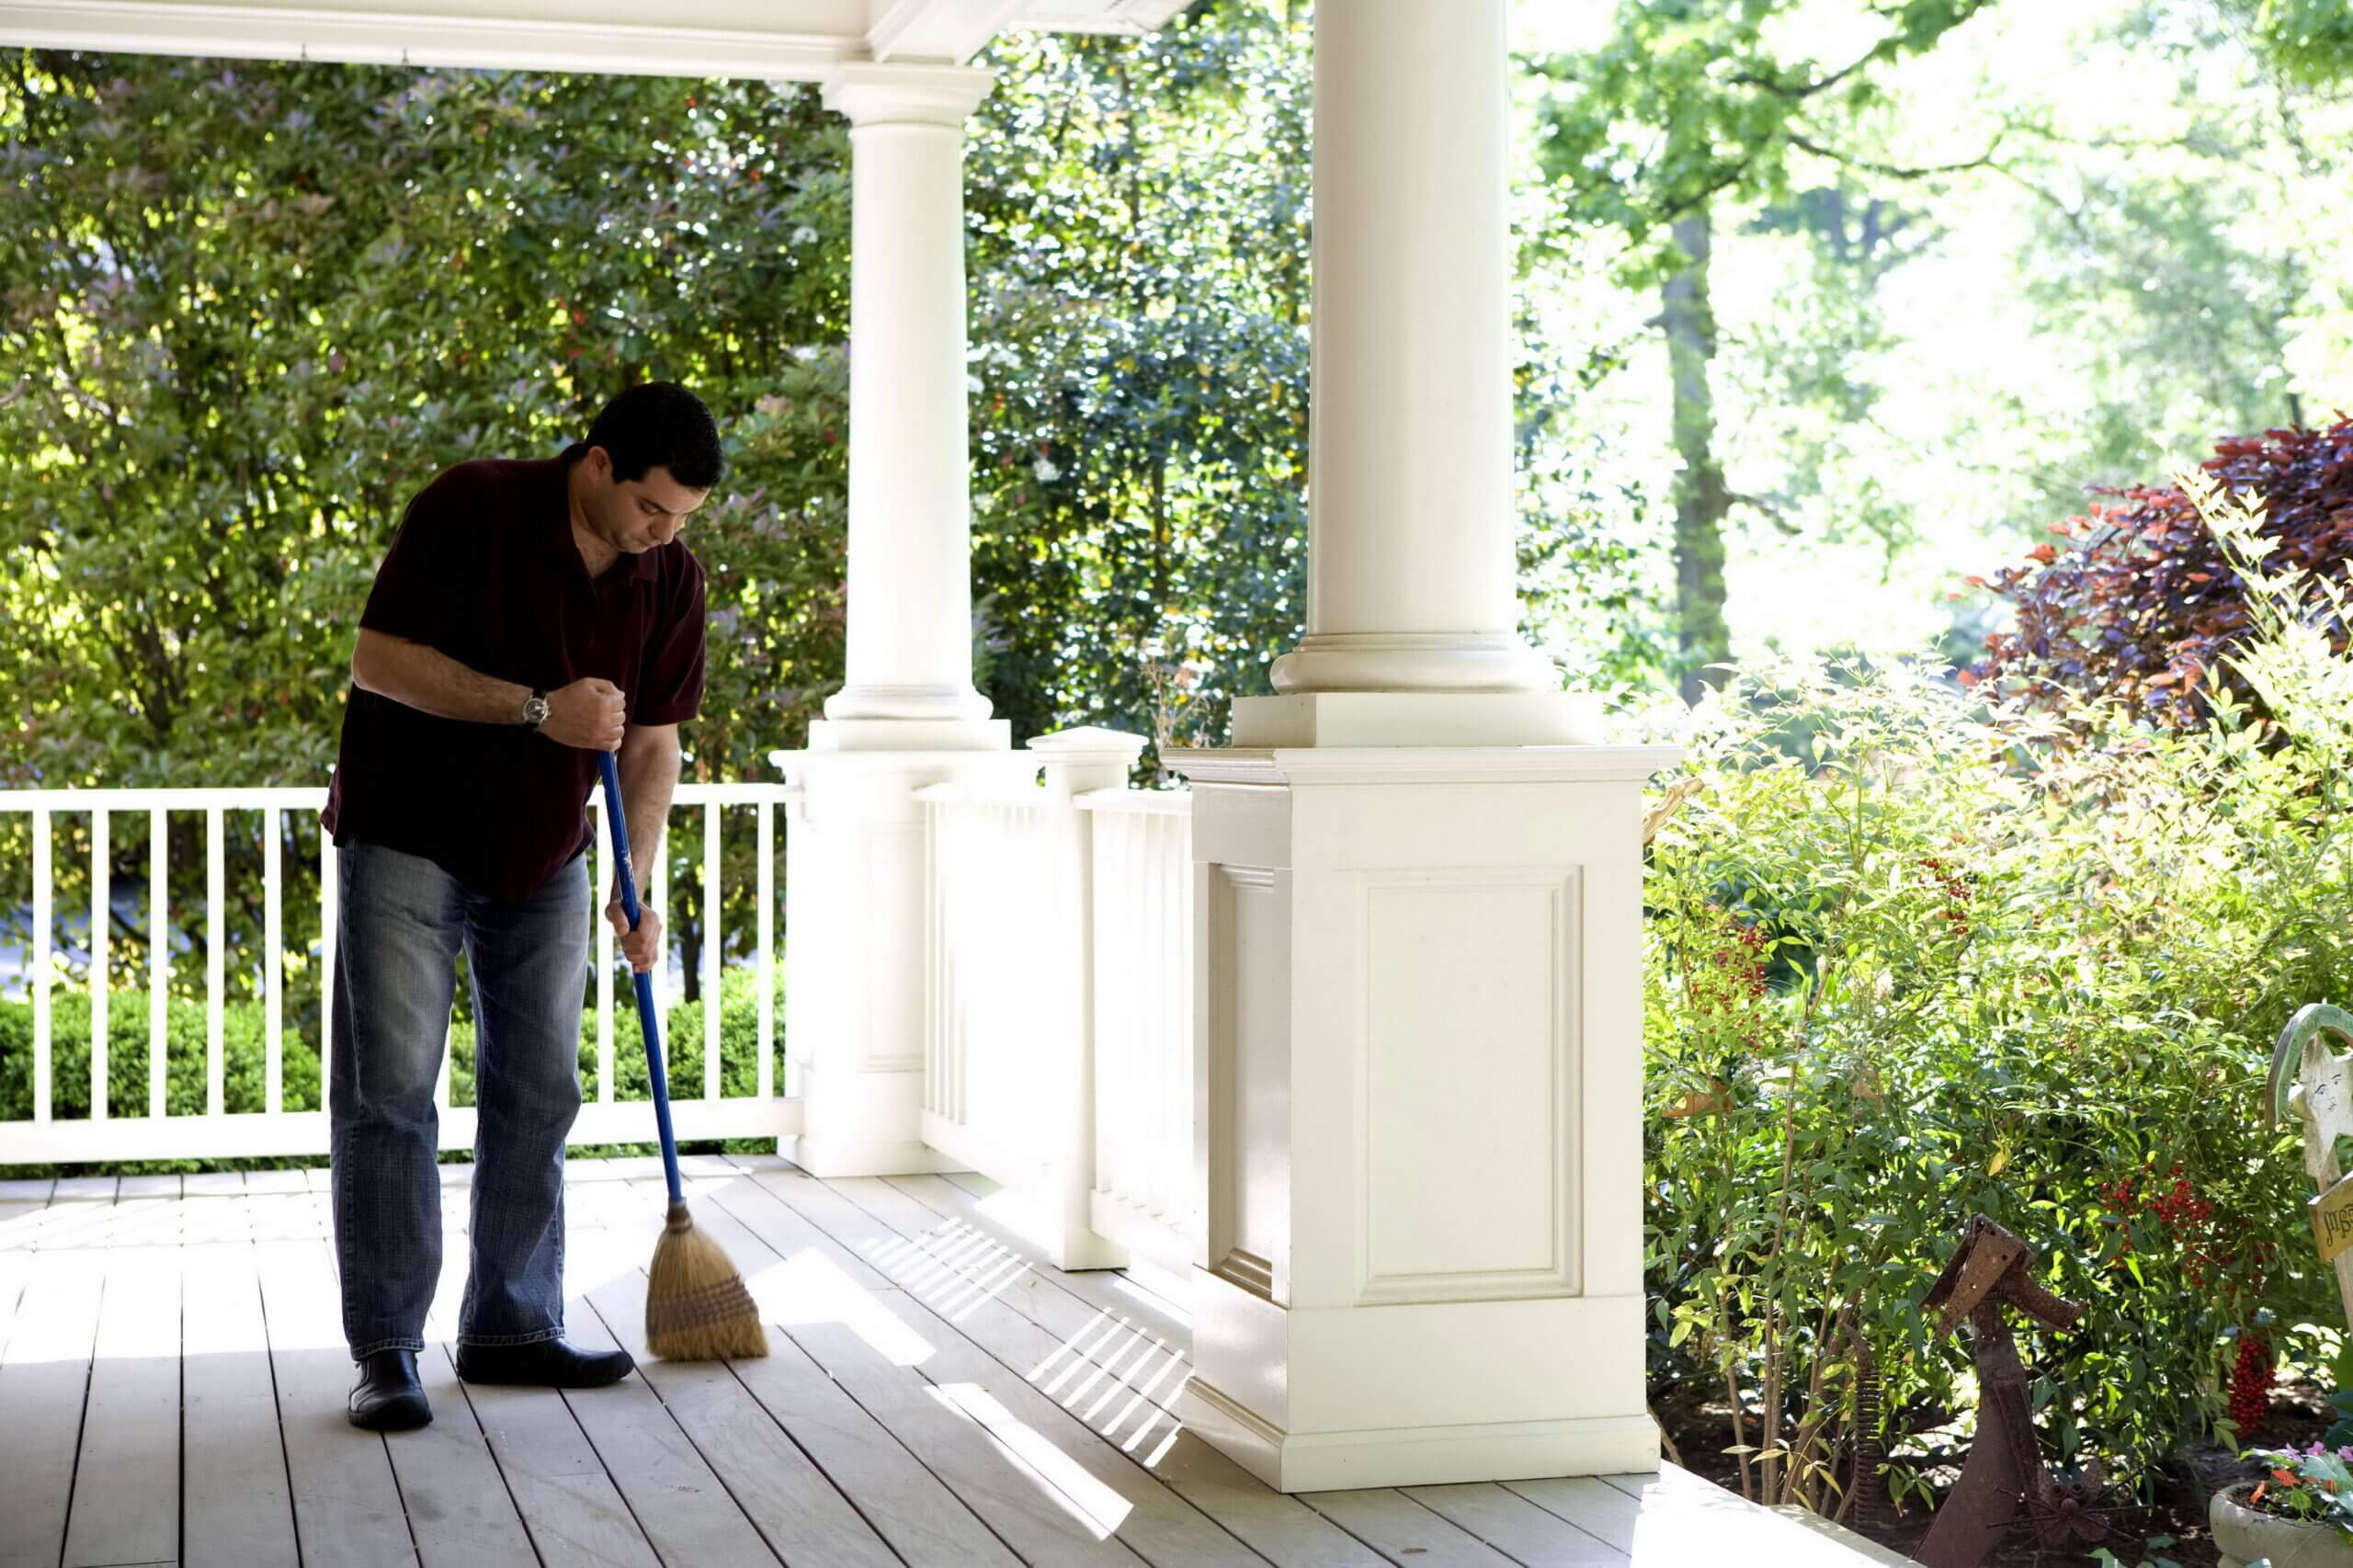 Man Cleaning Porch